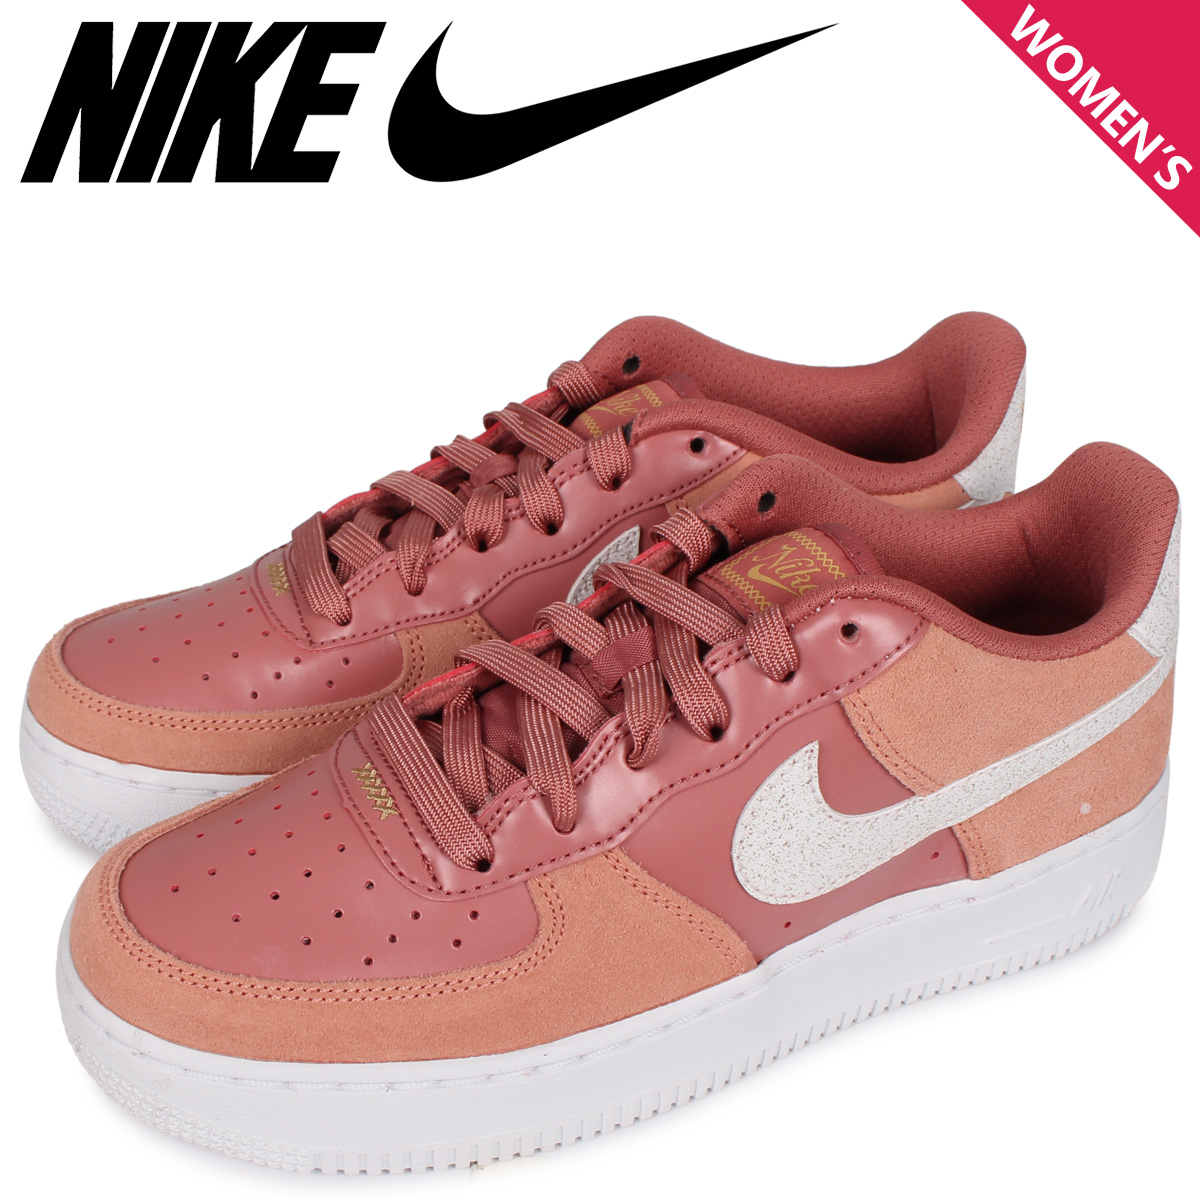 NIKE ナイキ エアフォース1 スニーカー レディース AIR FORCE 1 LV8 GS VALENTINE'S DAY ピンク CD7407-600 [3/3 新入荷]